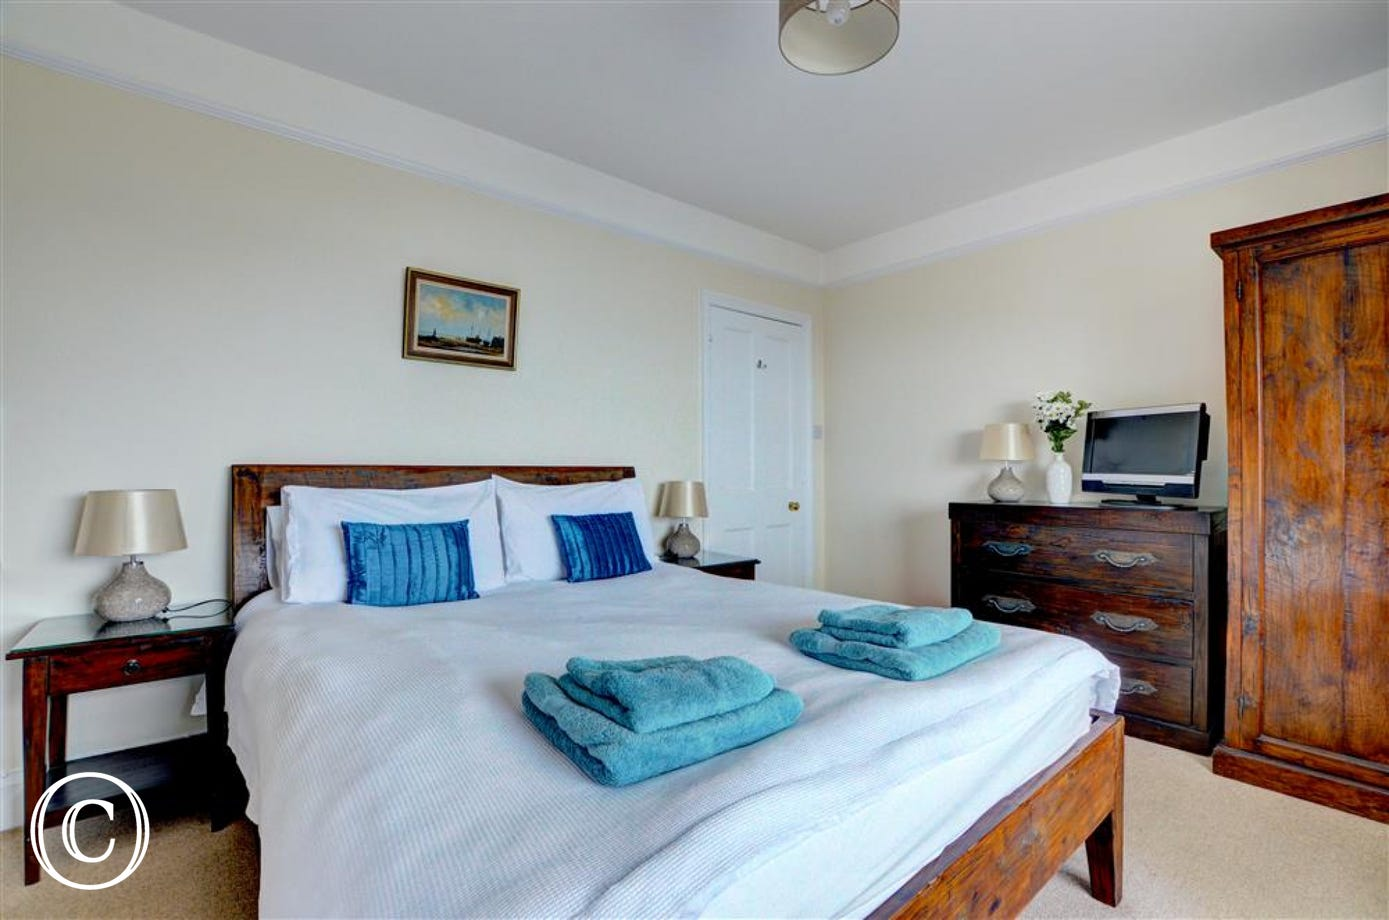 Stylishly presented master bedroom with TV and basin